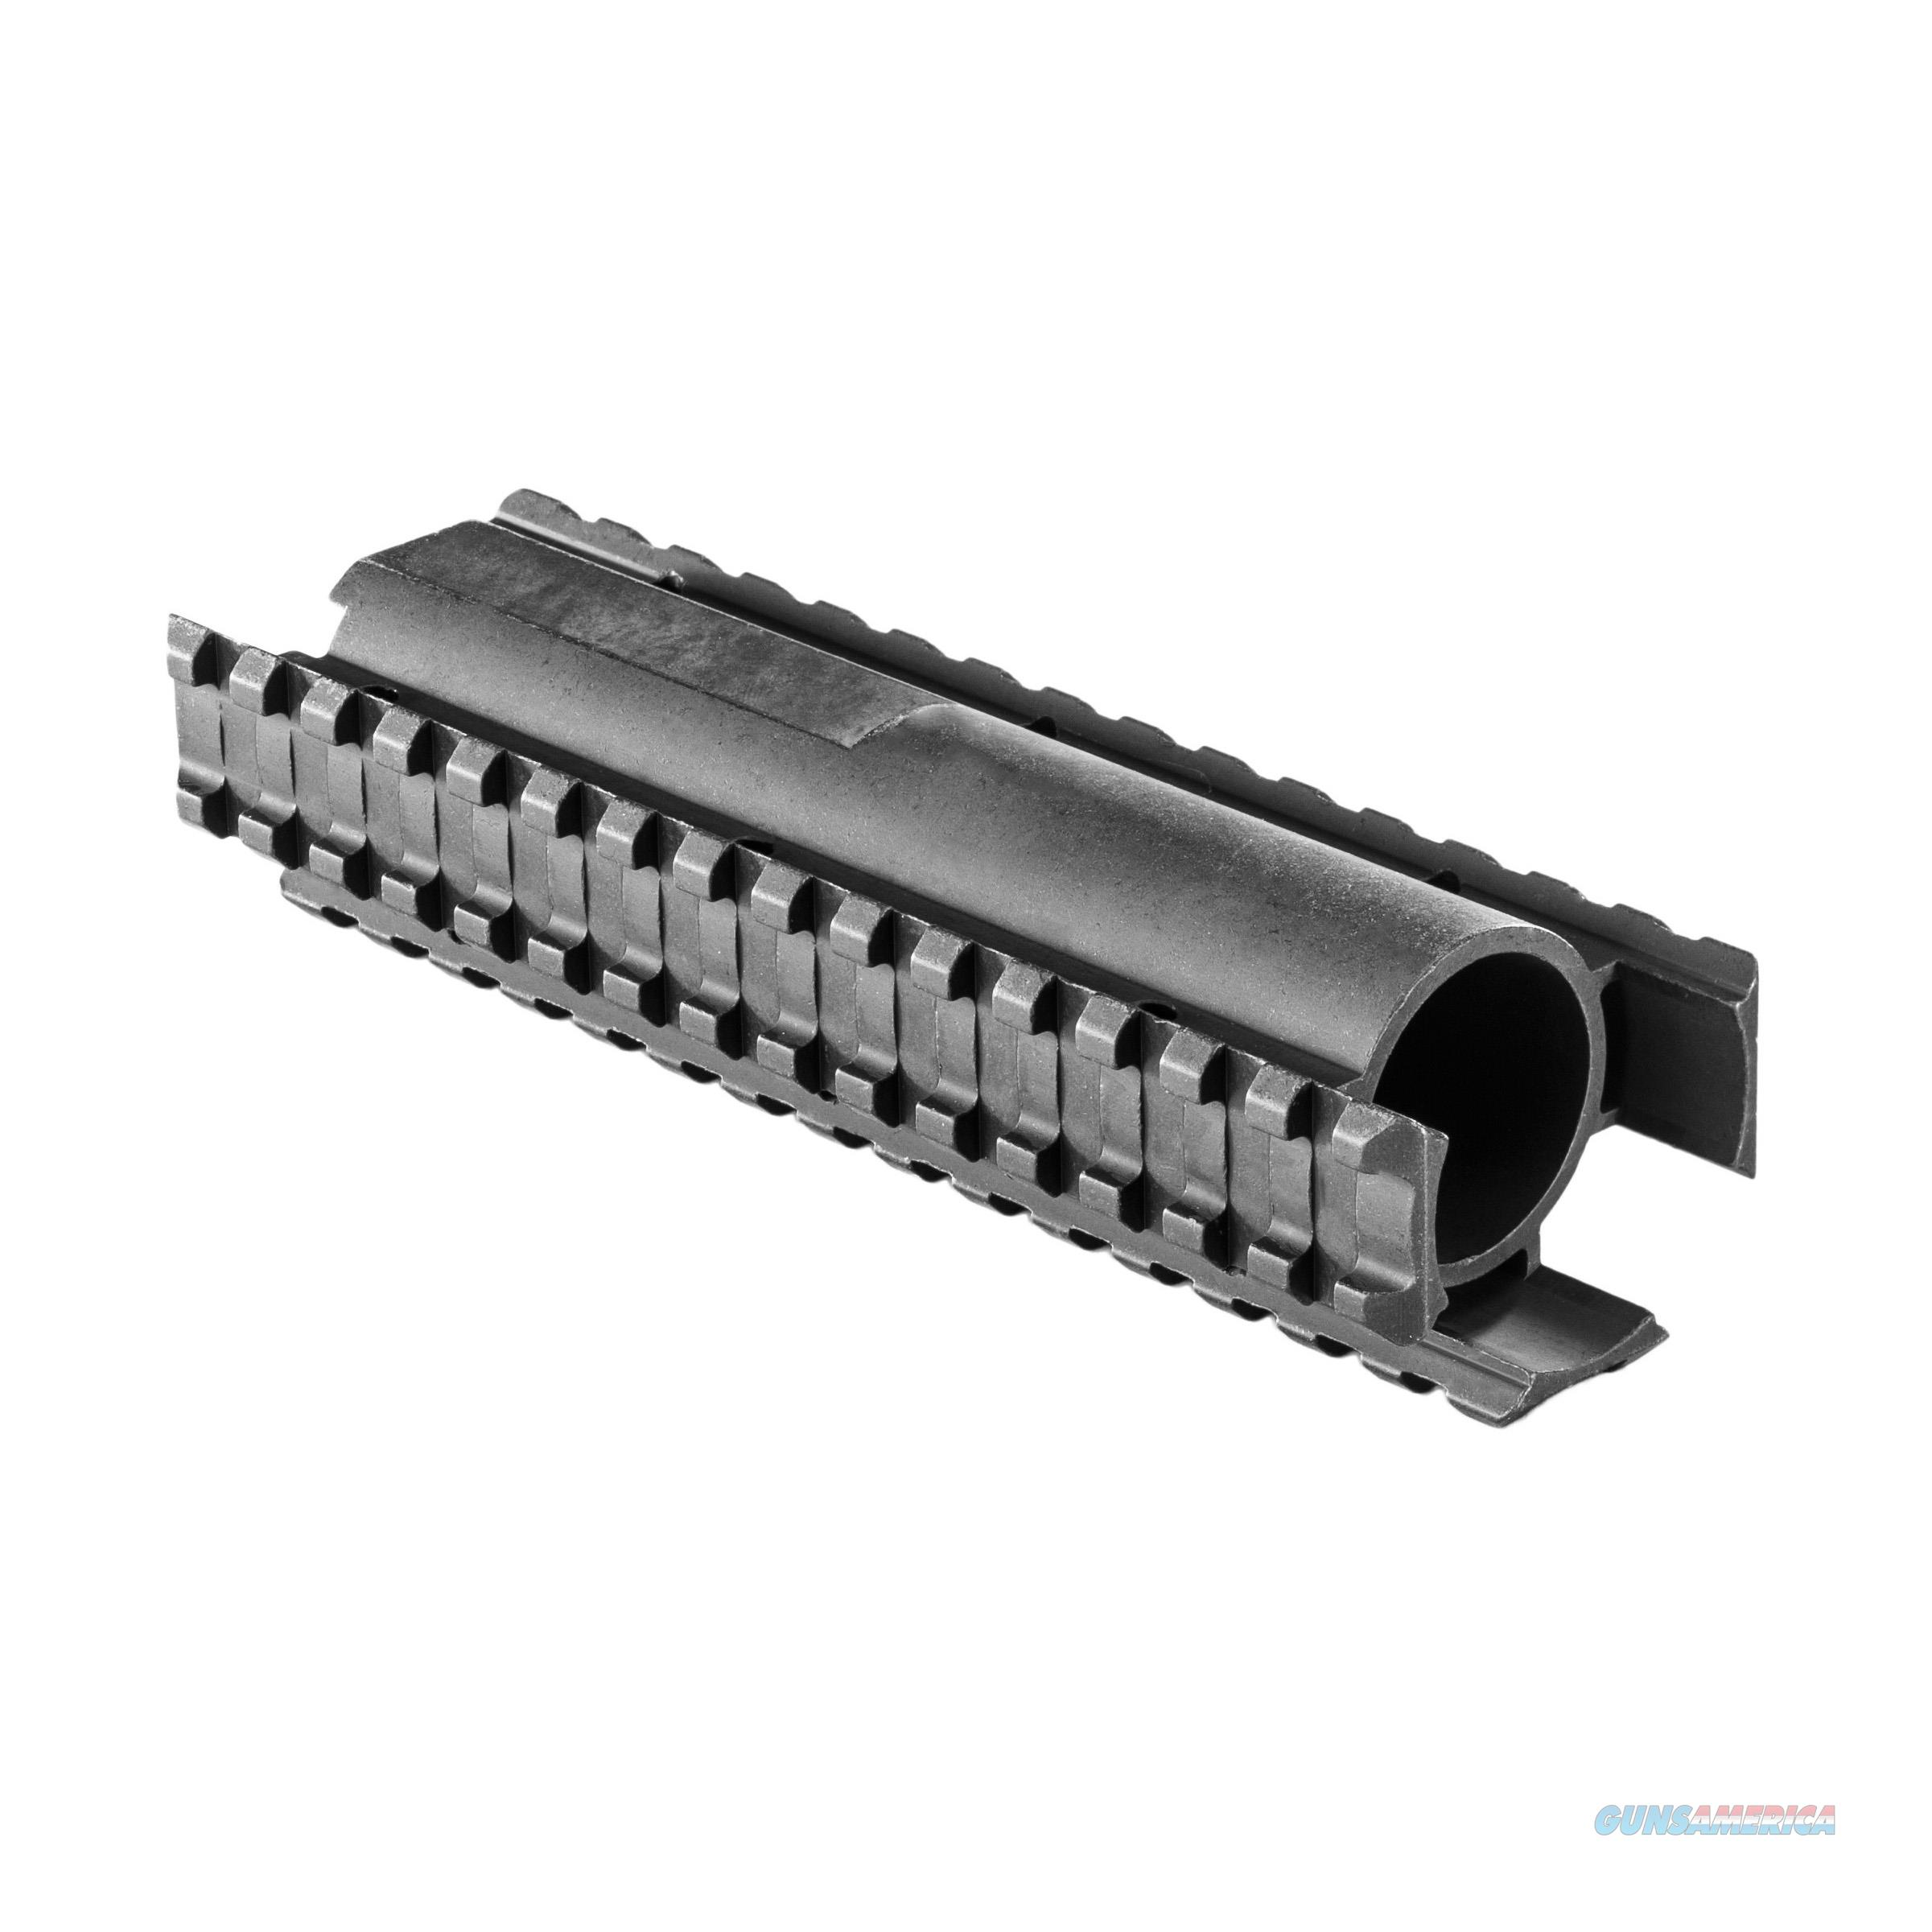 Ergo 3-Rail Forend Remignton 870 W/Ergo Rail Covers 4870  Non-Guns > Gun Parts > Misc > Rifles